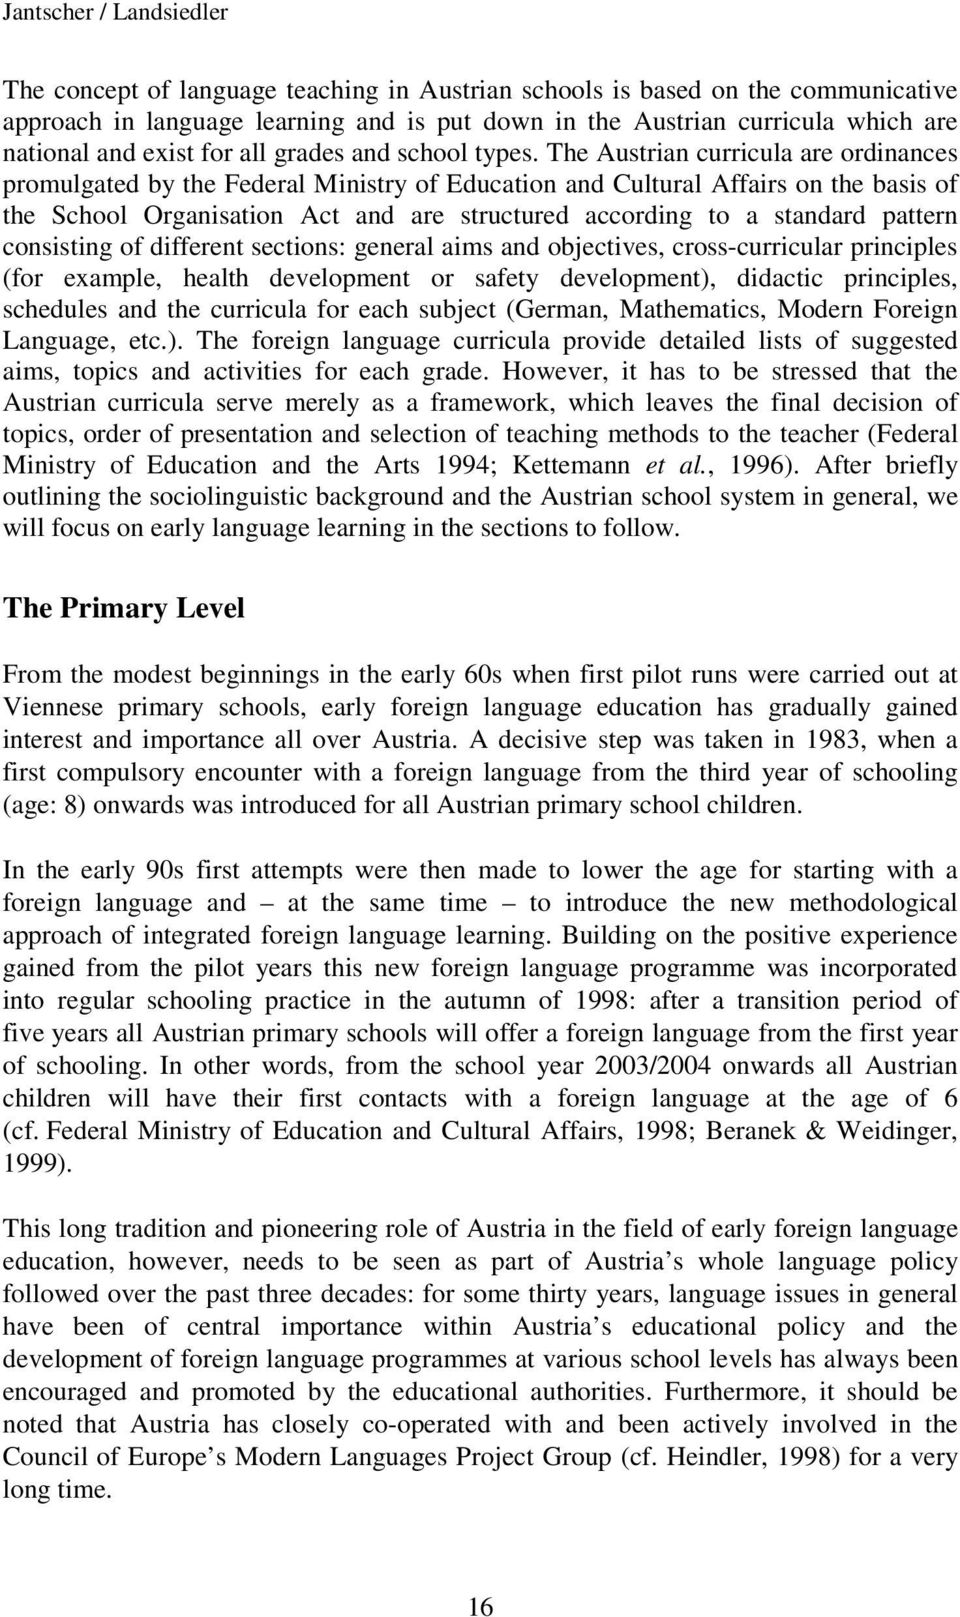 The Austrian curricula are ordinances promulgated by the Federal Ministry of Education and Cultural Affairs on the basis of the School Organisation Act and are structured according to a standard